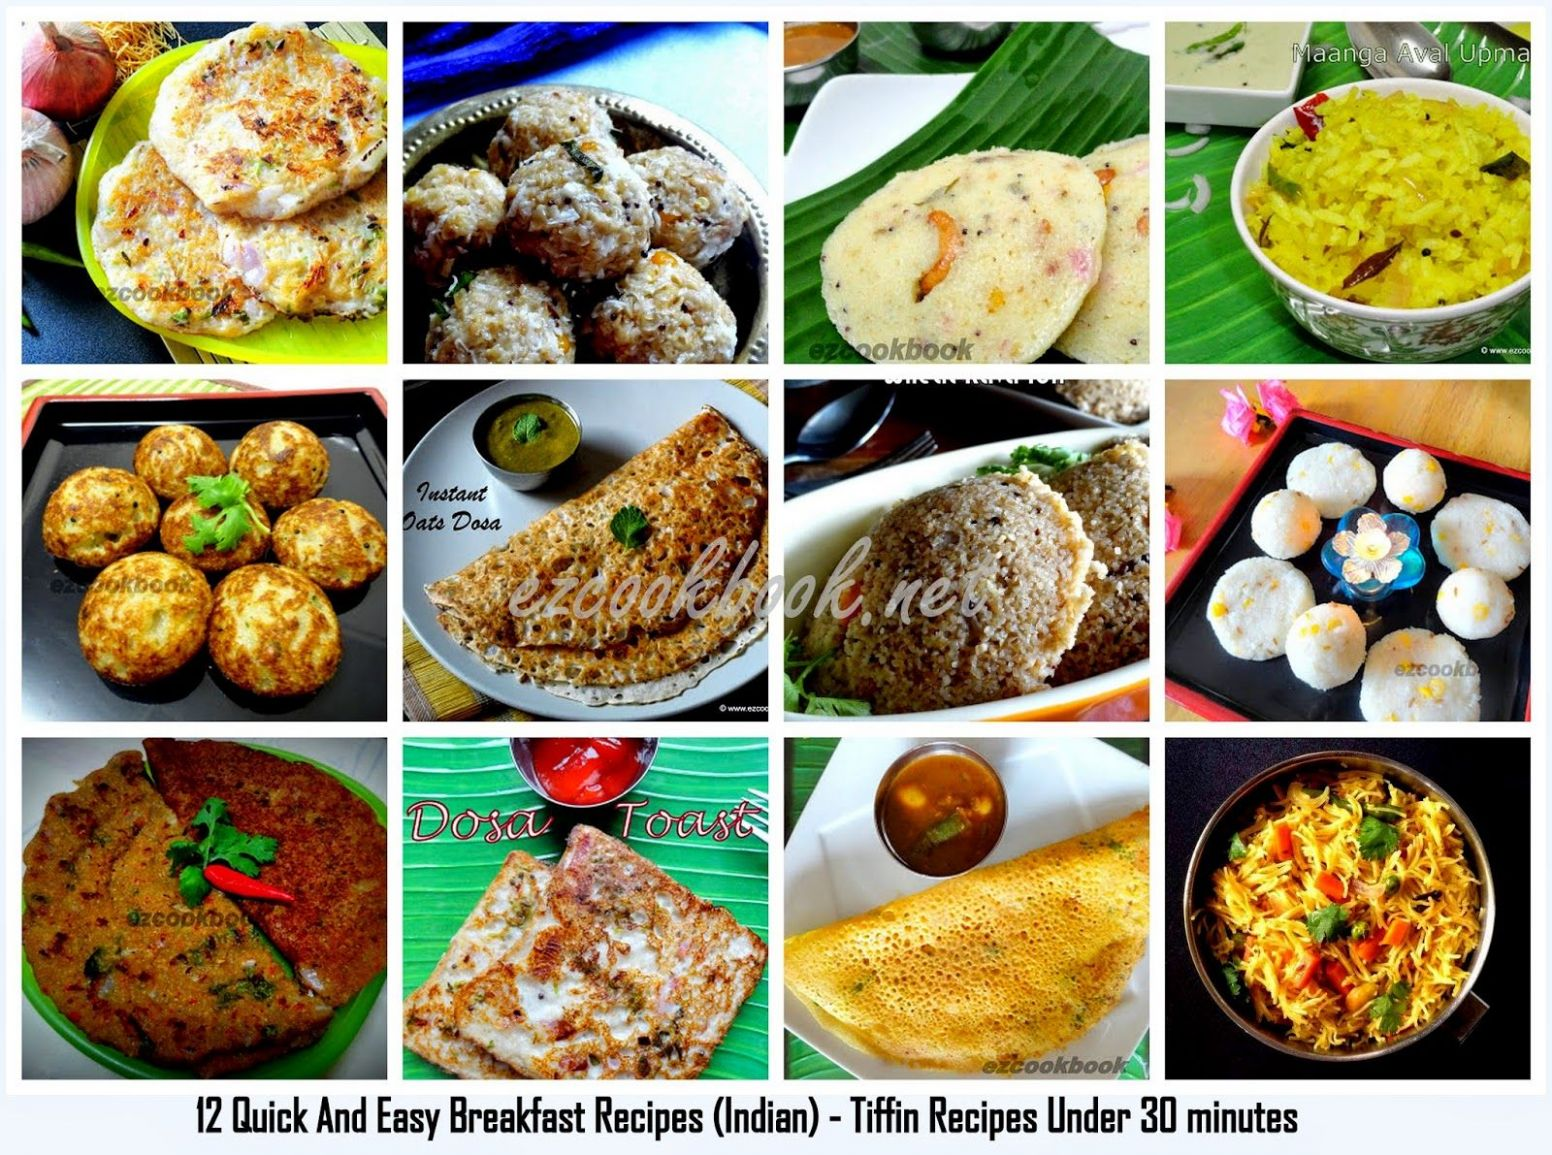 12 Quick And Easy Breakfast Recipes (Indian) - Tiffin Recipes ..